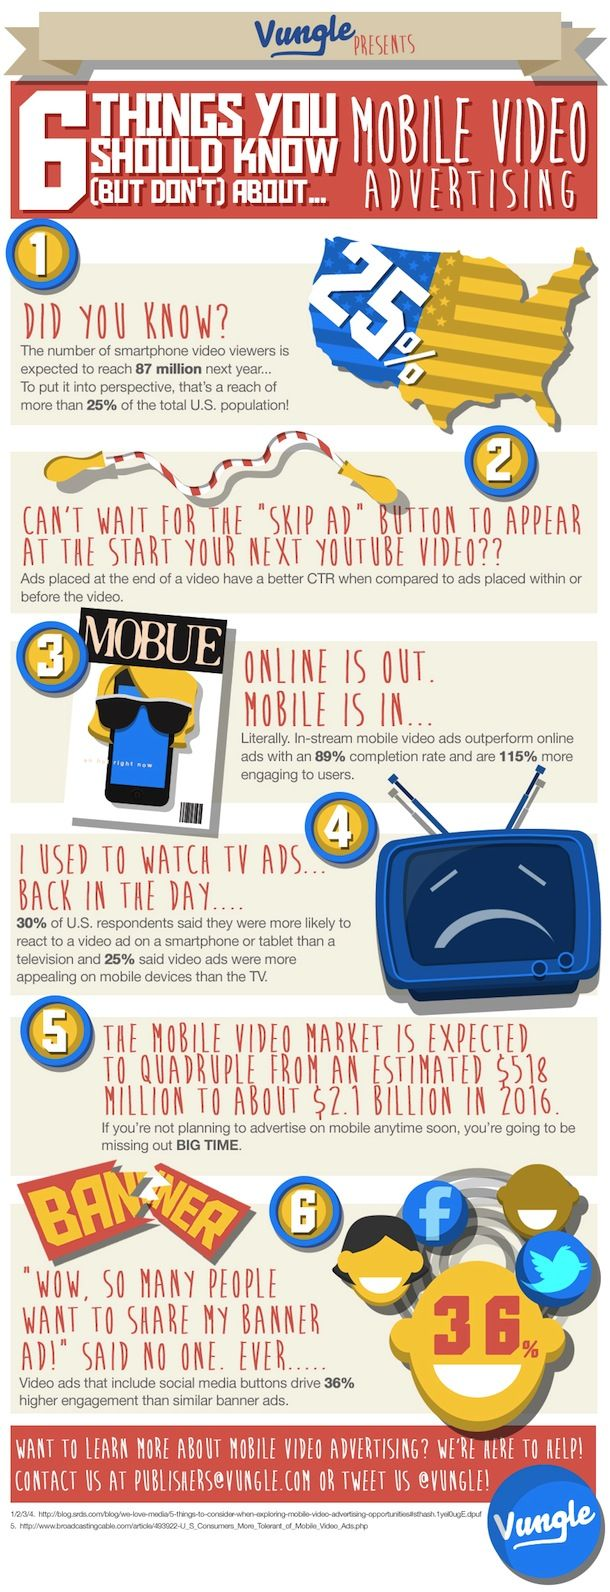 6 Things You Should Know About Mobile Video Advertising [Inforgraphic]